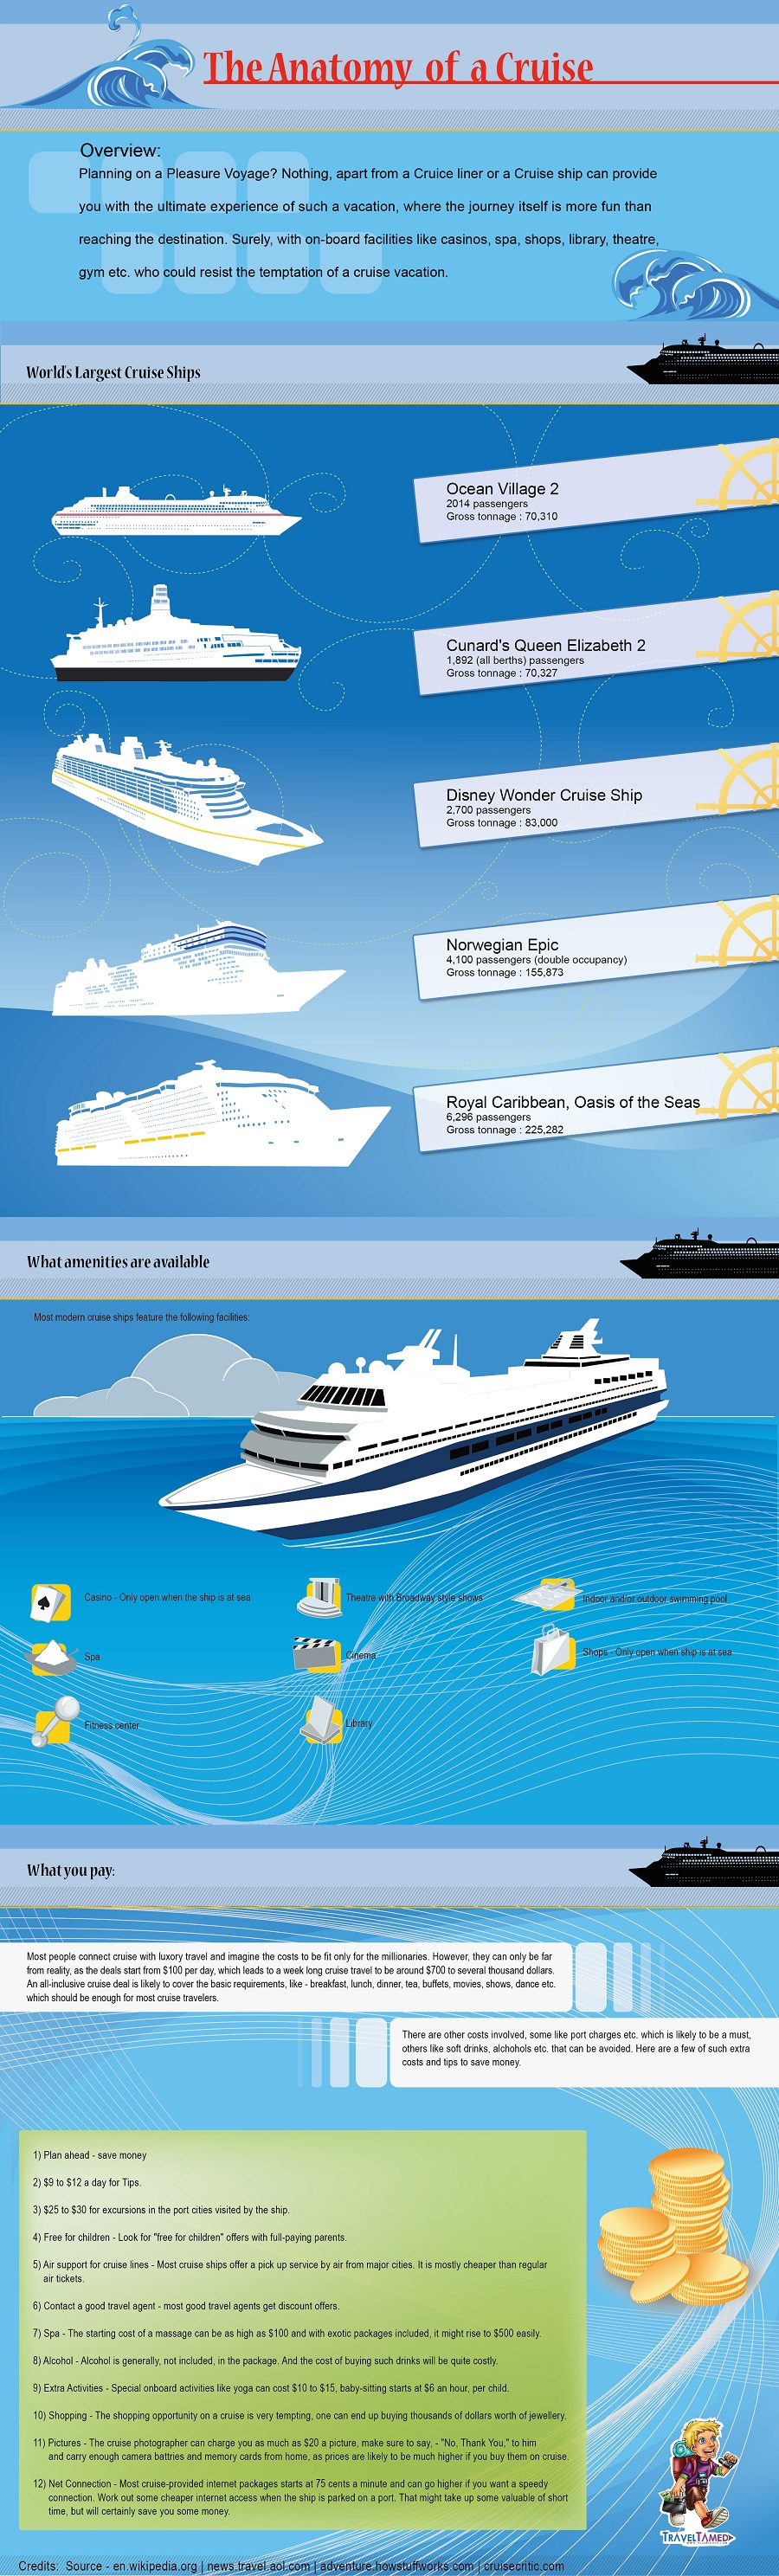 The Anatomy of a Cruise [INFOGRAPHIC] – Infographic List